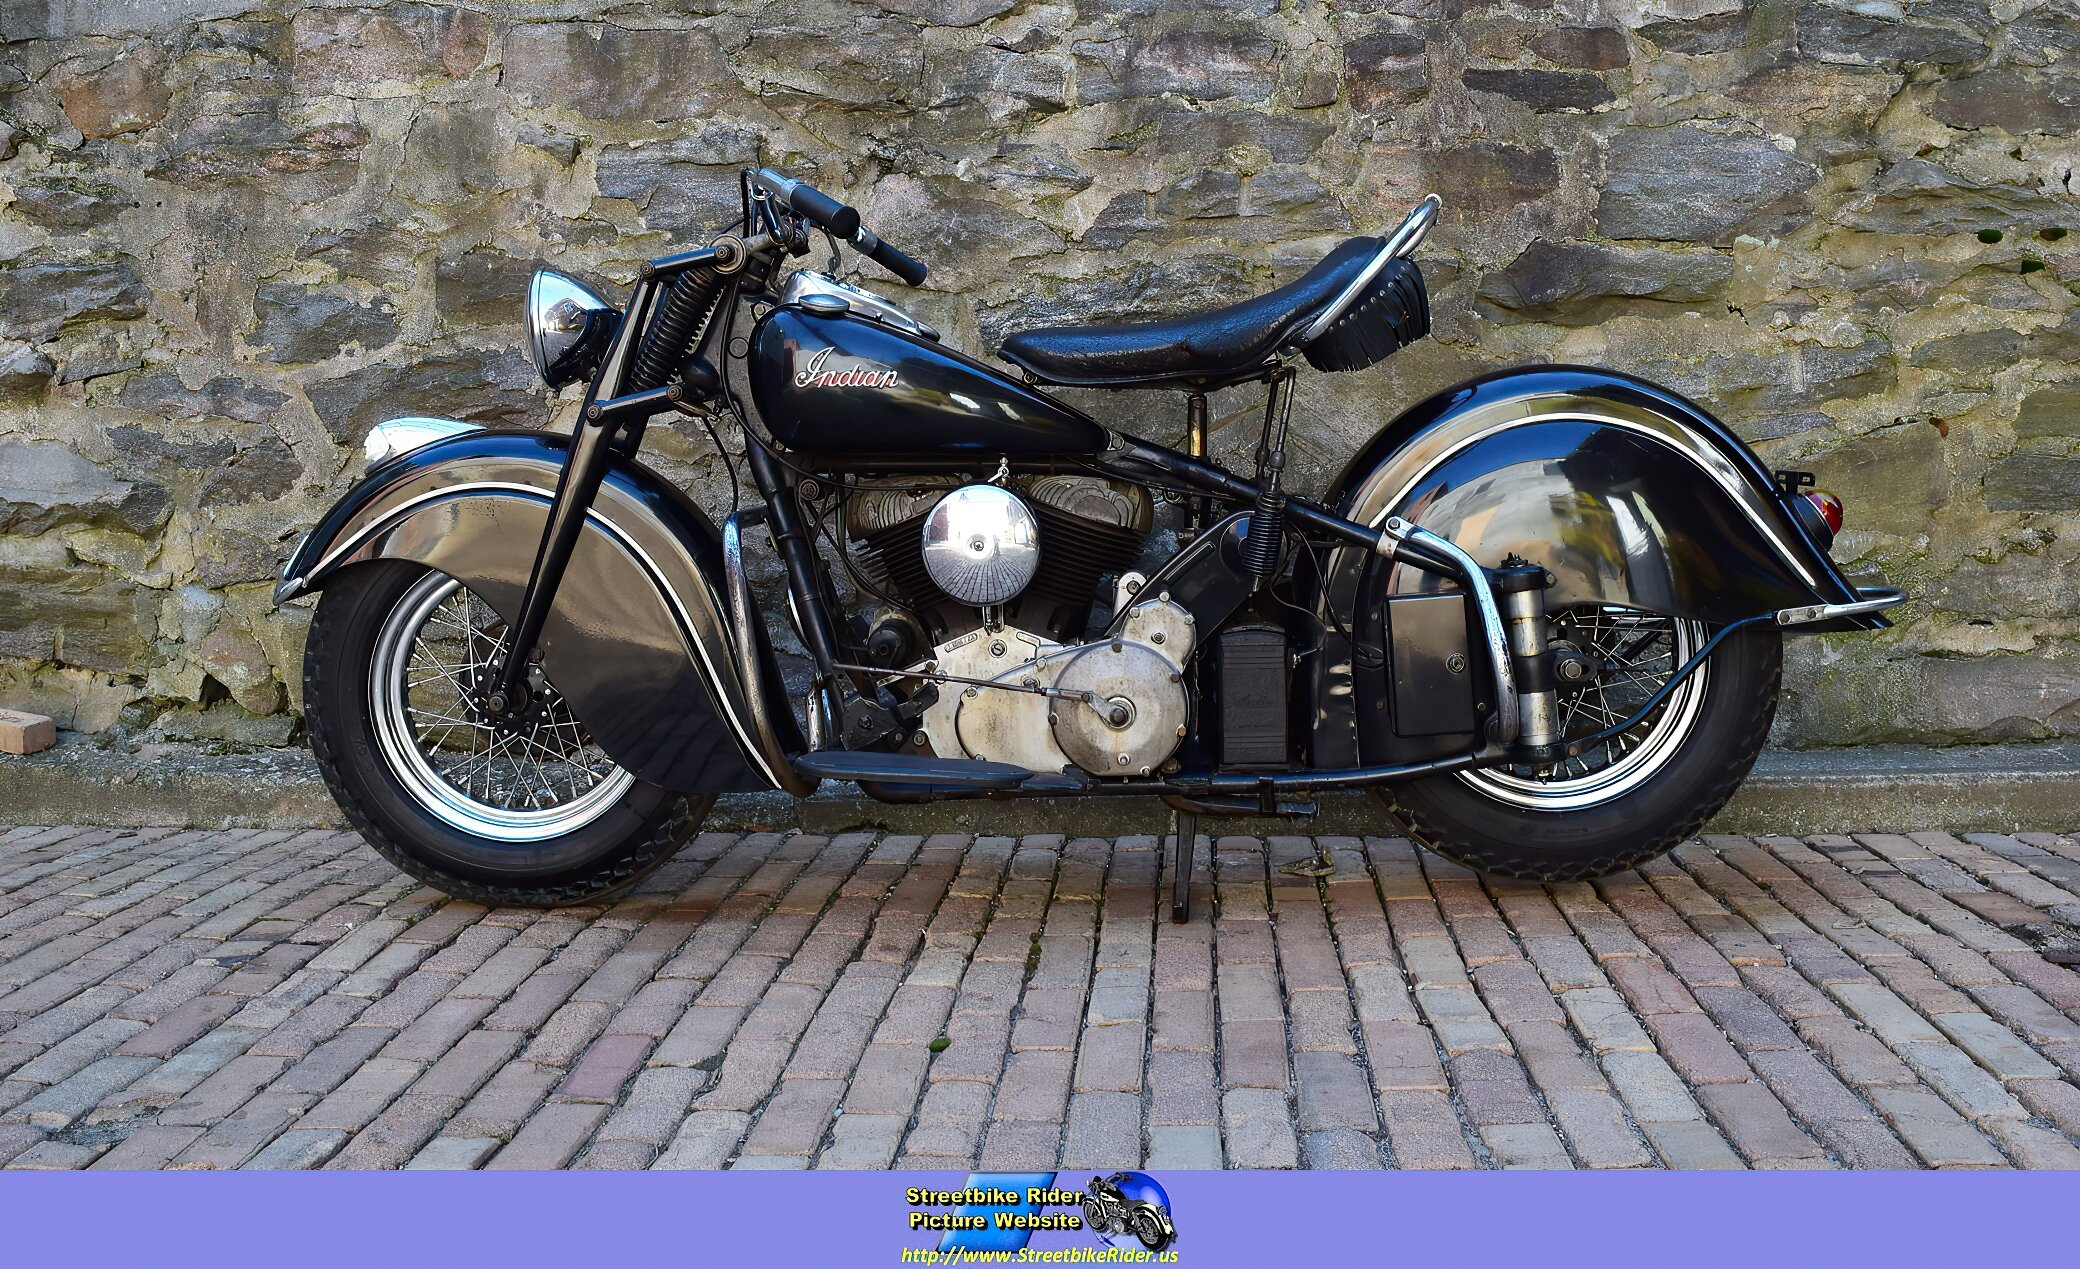 Indian Chief Models - ID: 169255